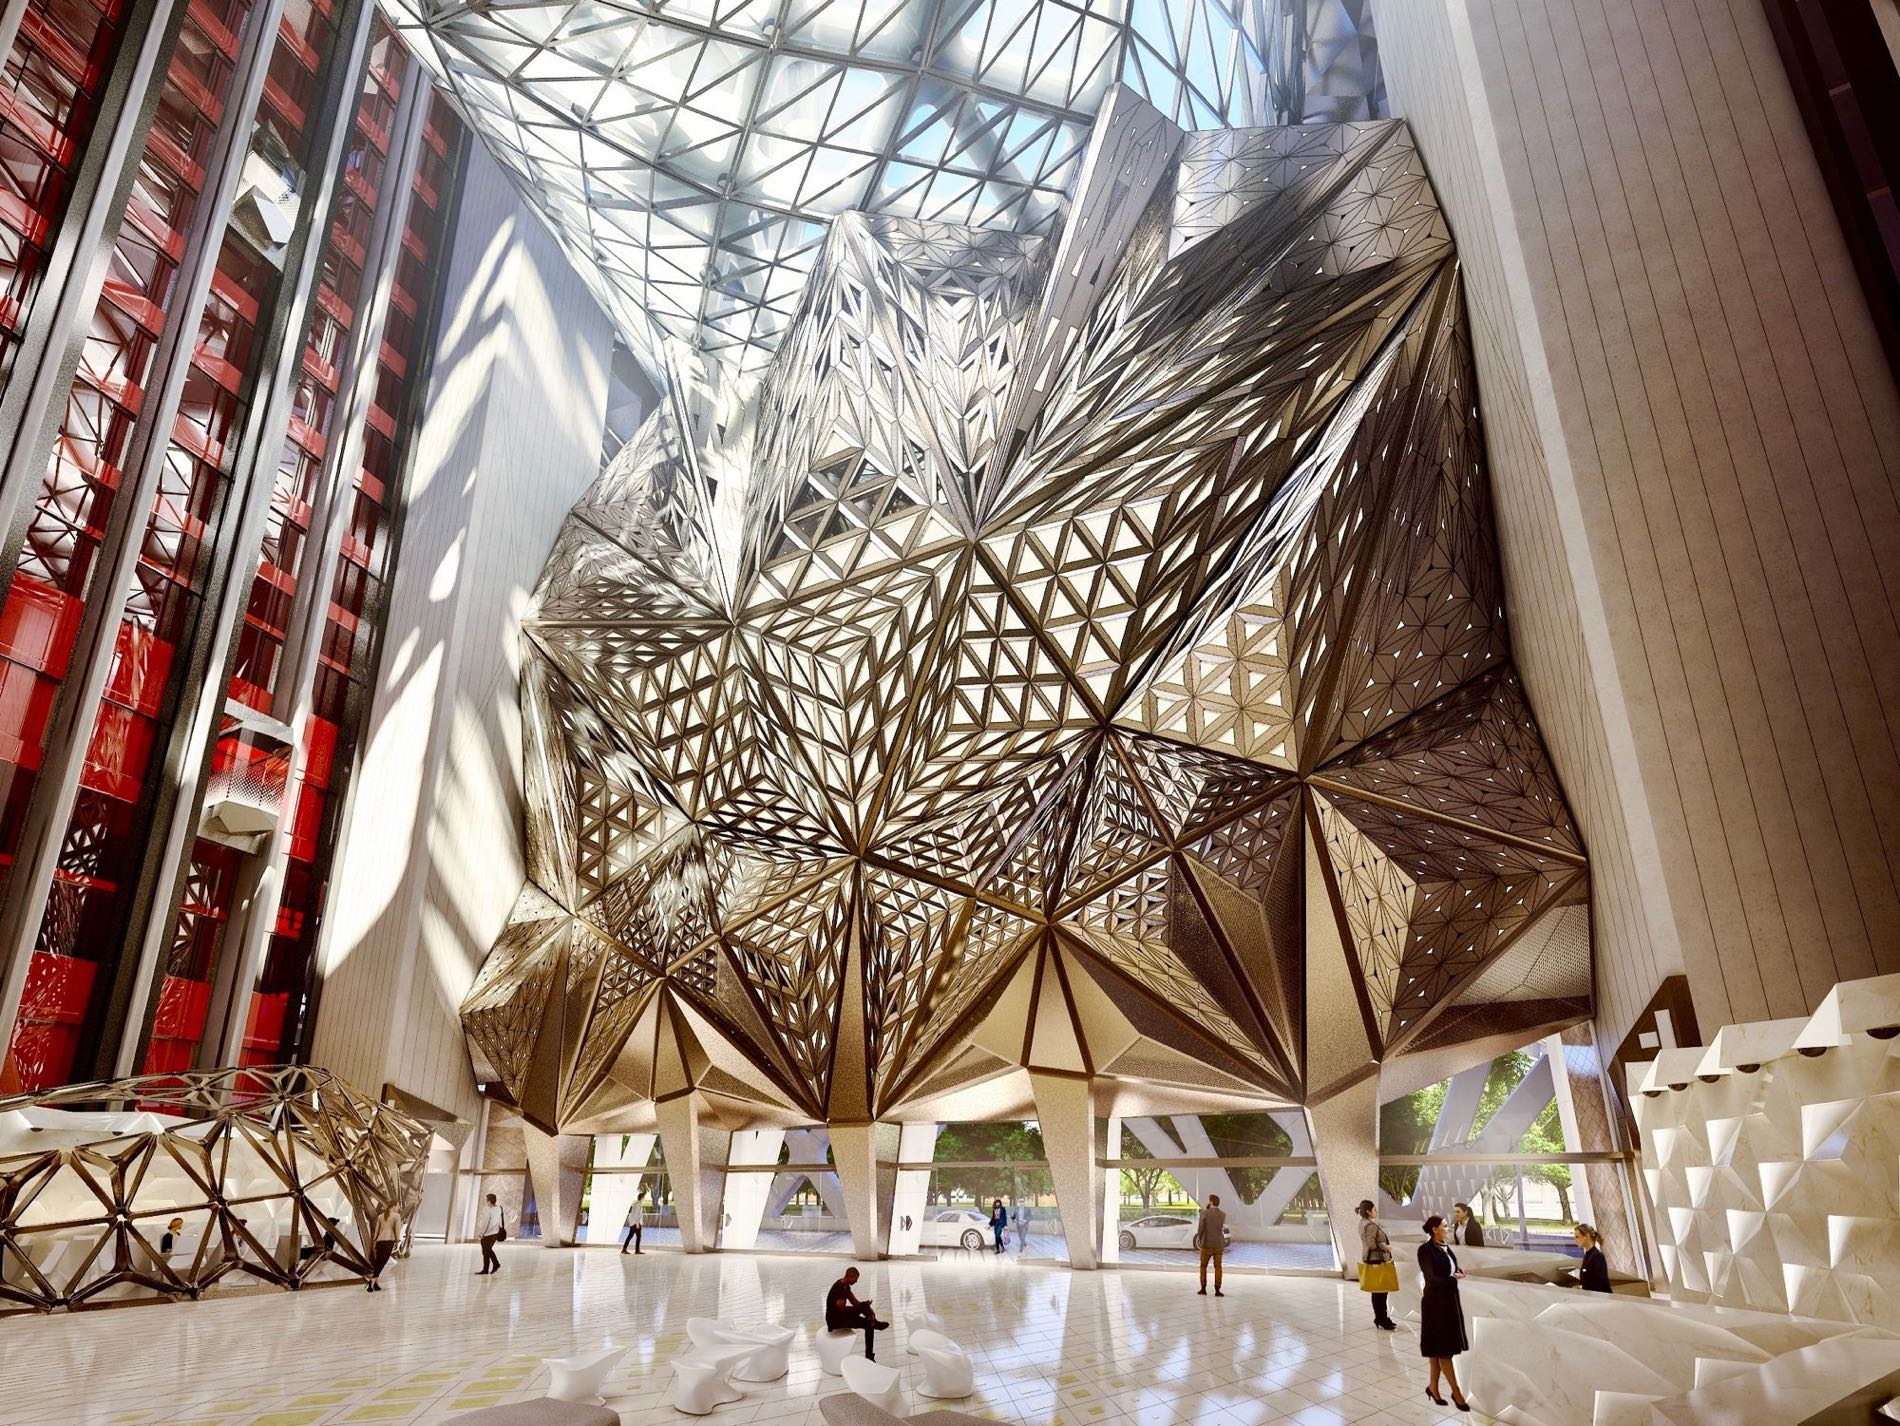 Morpheus Hotel In Macau Is The World S 1st Free Form